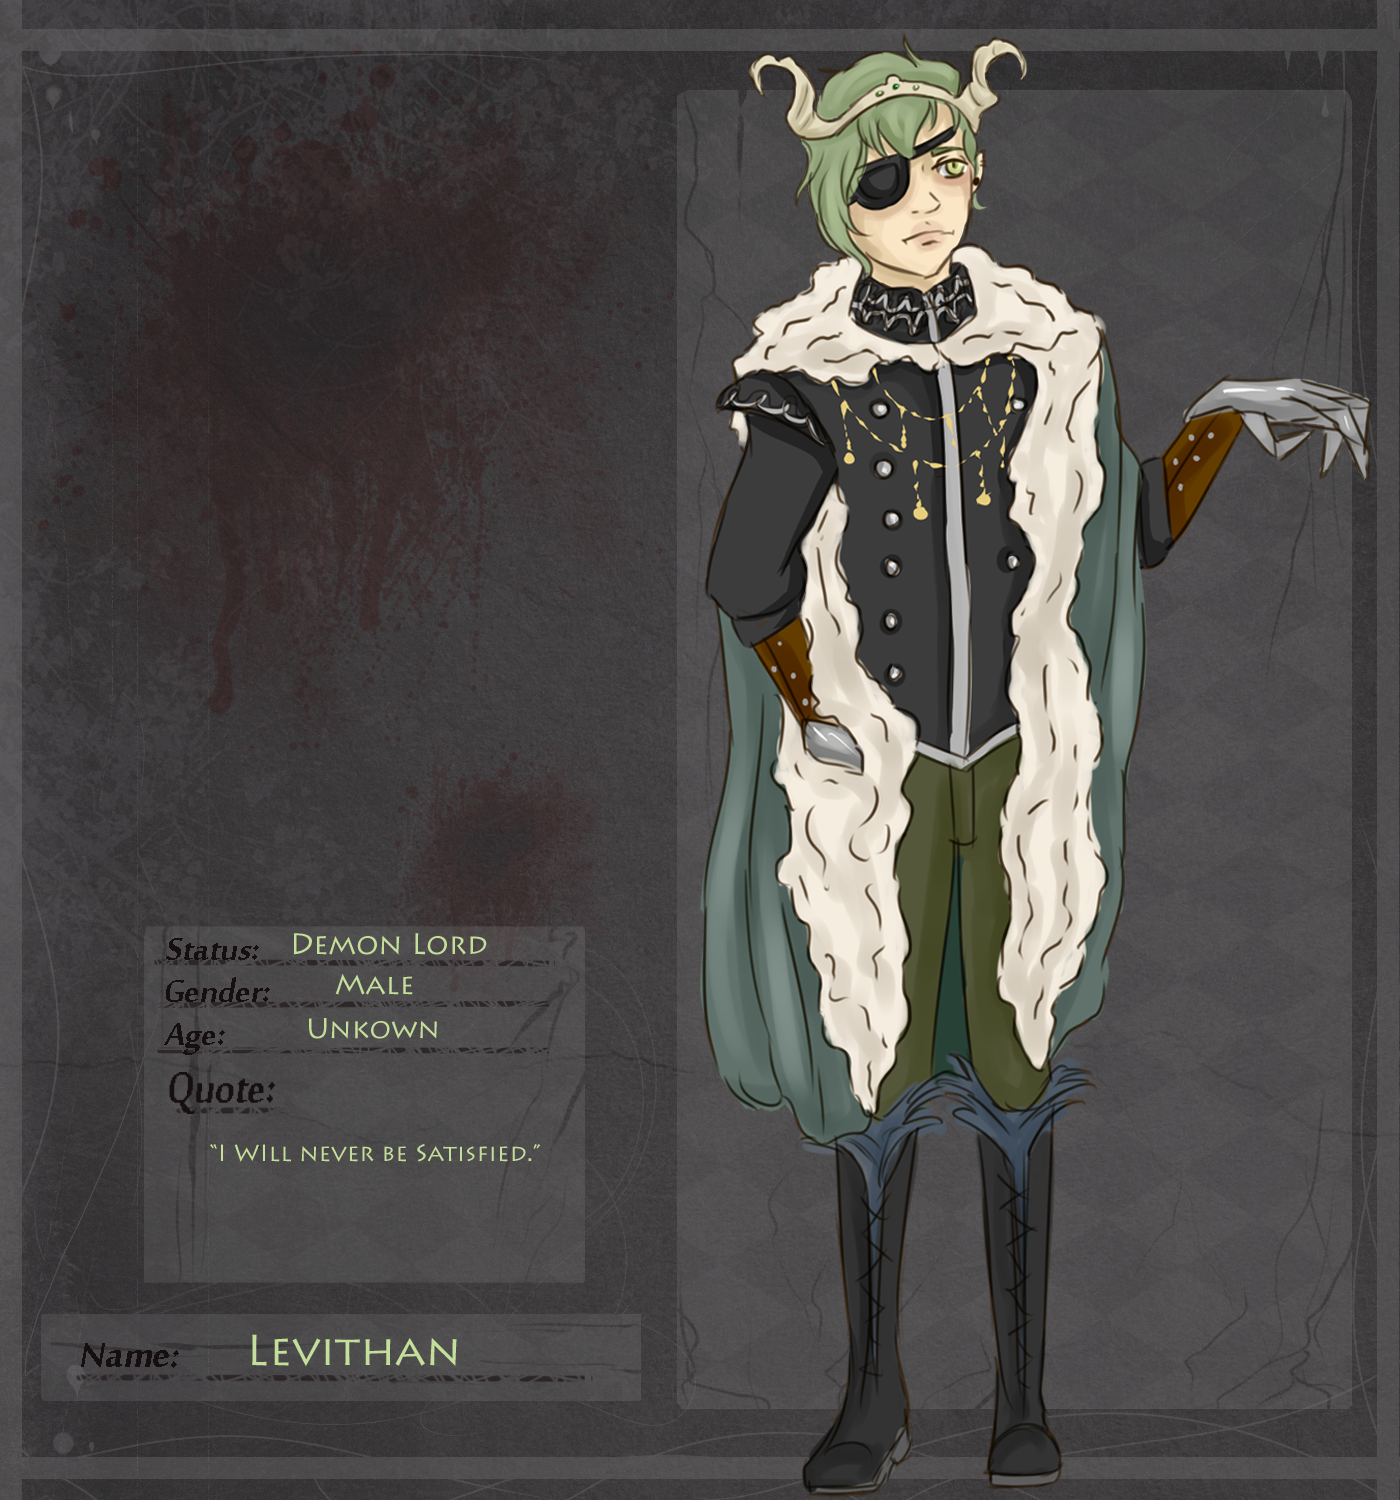 Demon Lord: Leviathan by TheUnitCircle on DeviantArt